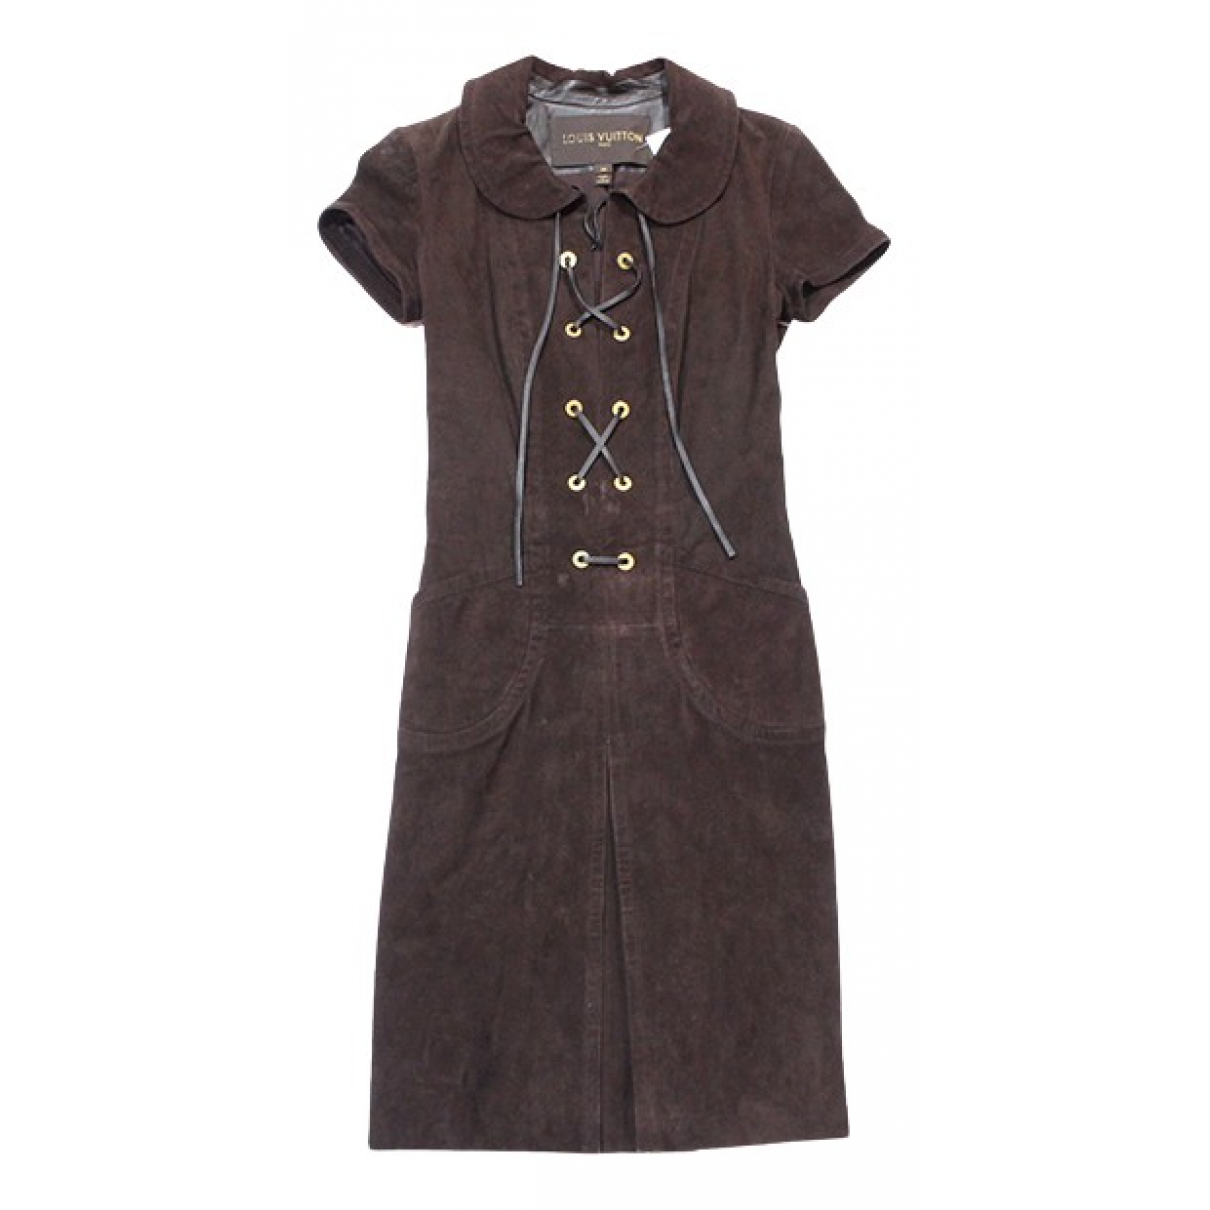 Louis Vuitton N Brown Suede dress for Women 36 FR